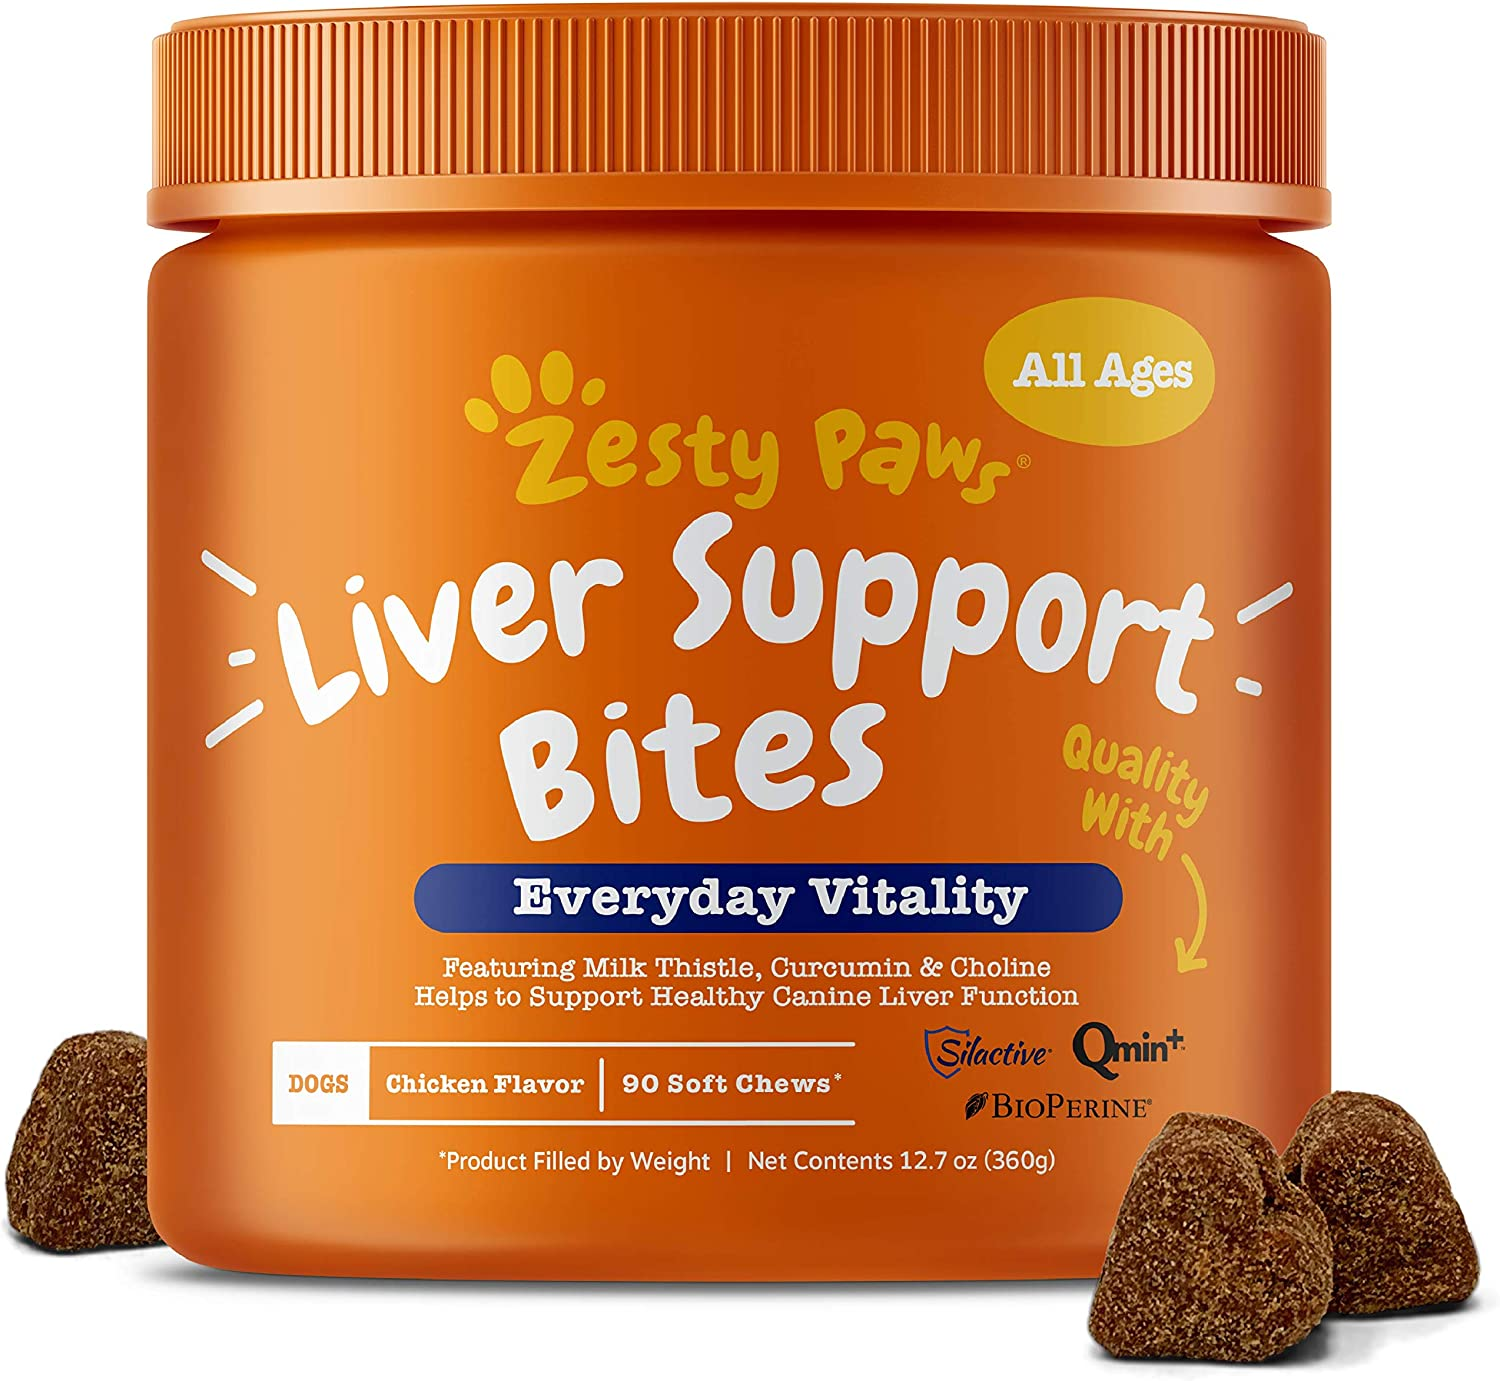 Zesty Paws Liver Support Supplement for Dogs - with Milk Thistle Extract, Turmeric Curcumin, Cranberry & Choline - Natural & Grain Free Soft Chew Formula - for Dog Liver Function & Detox